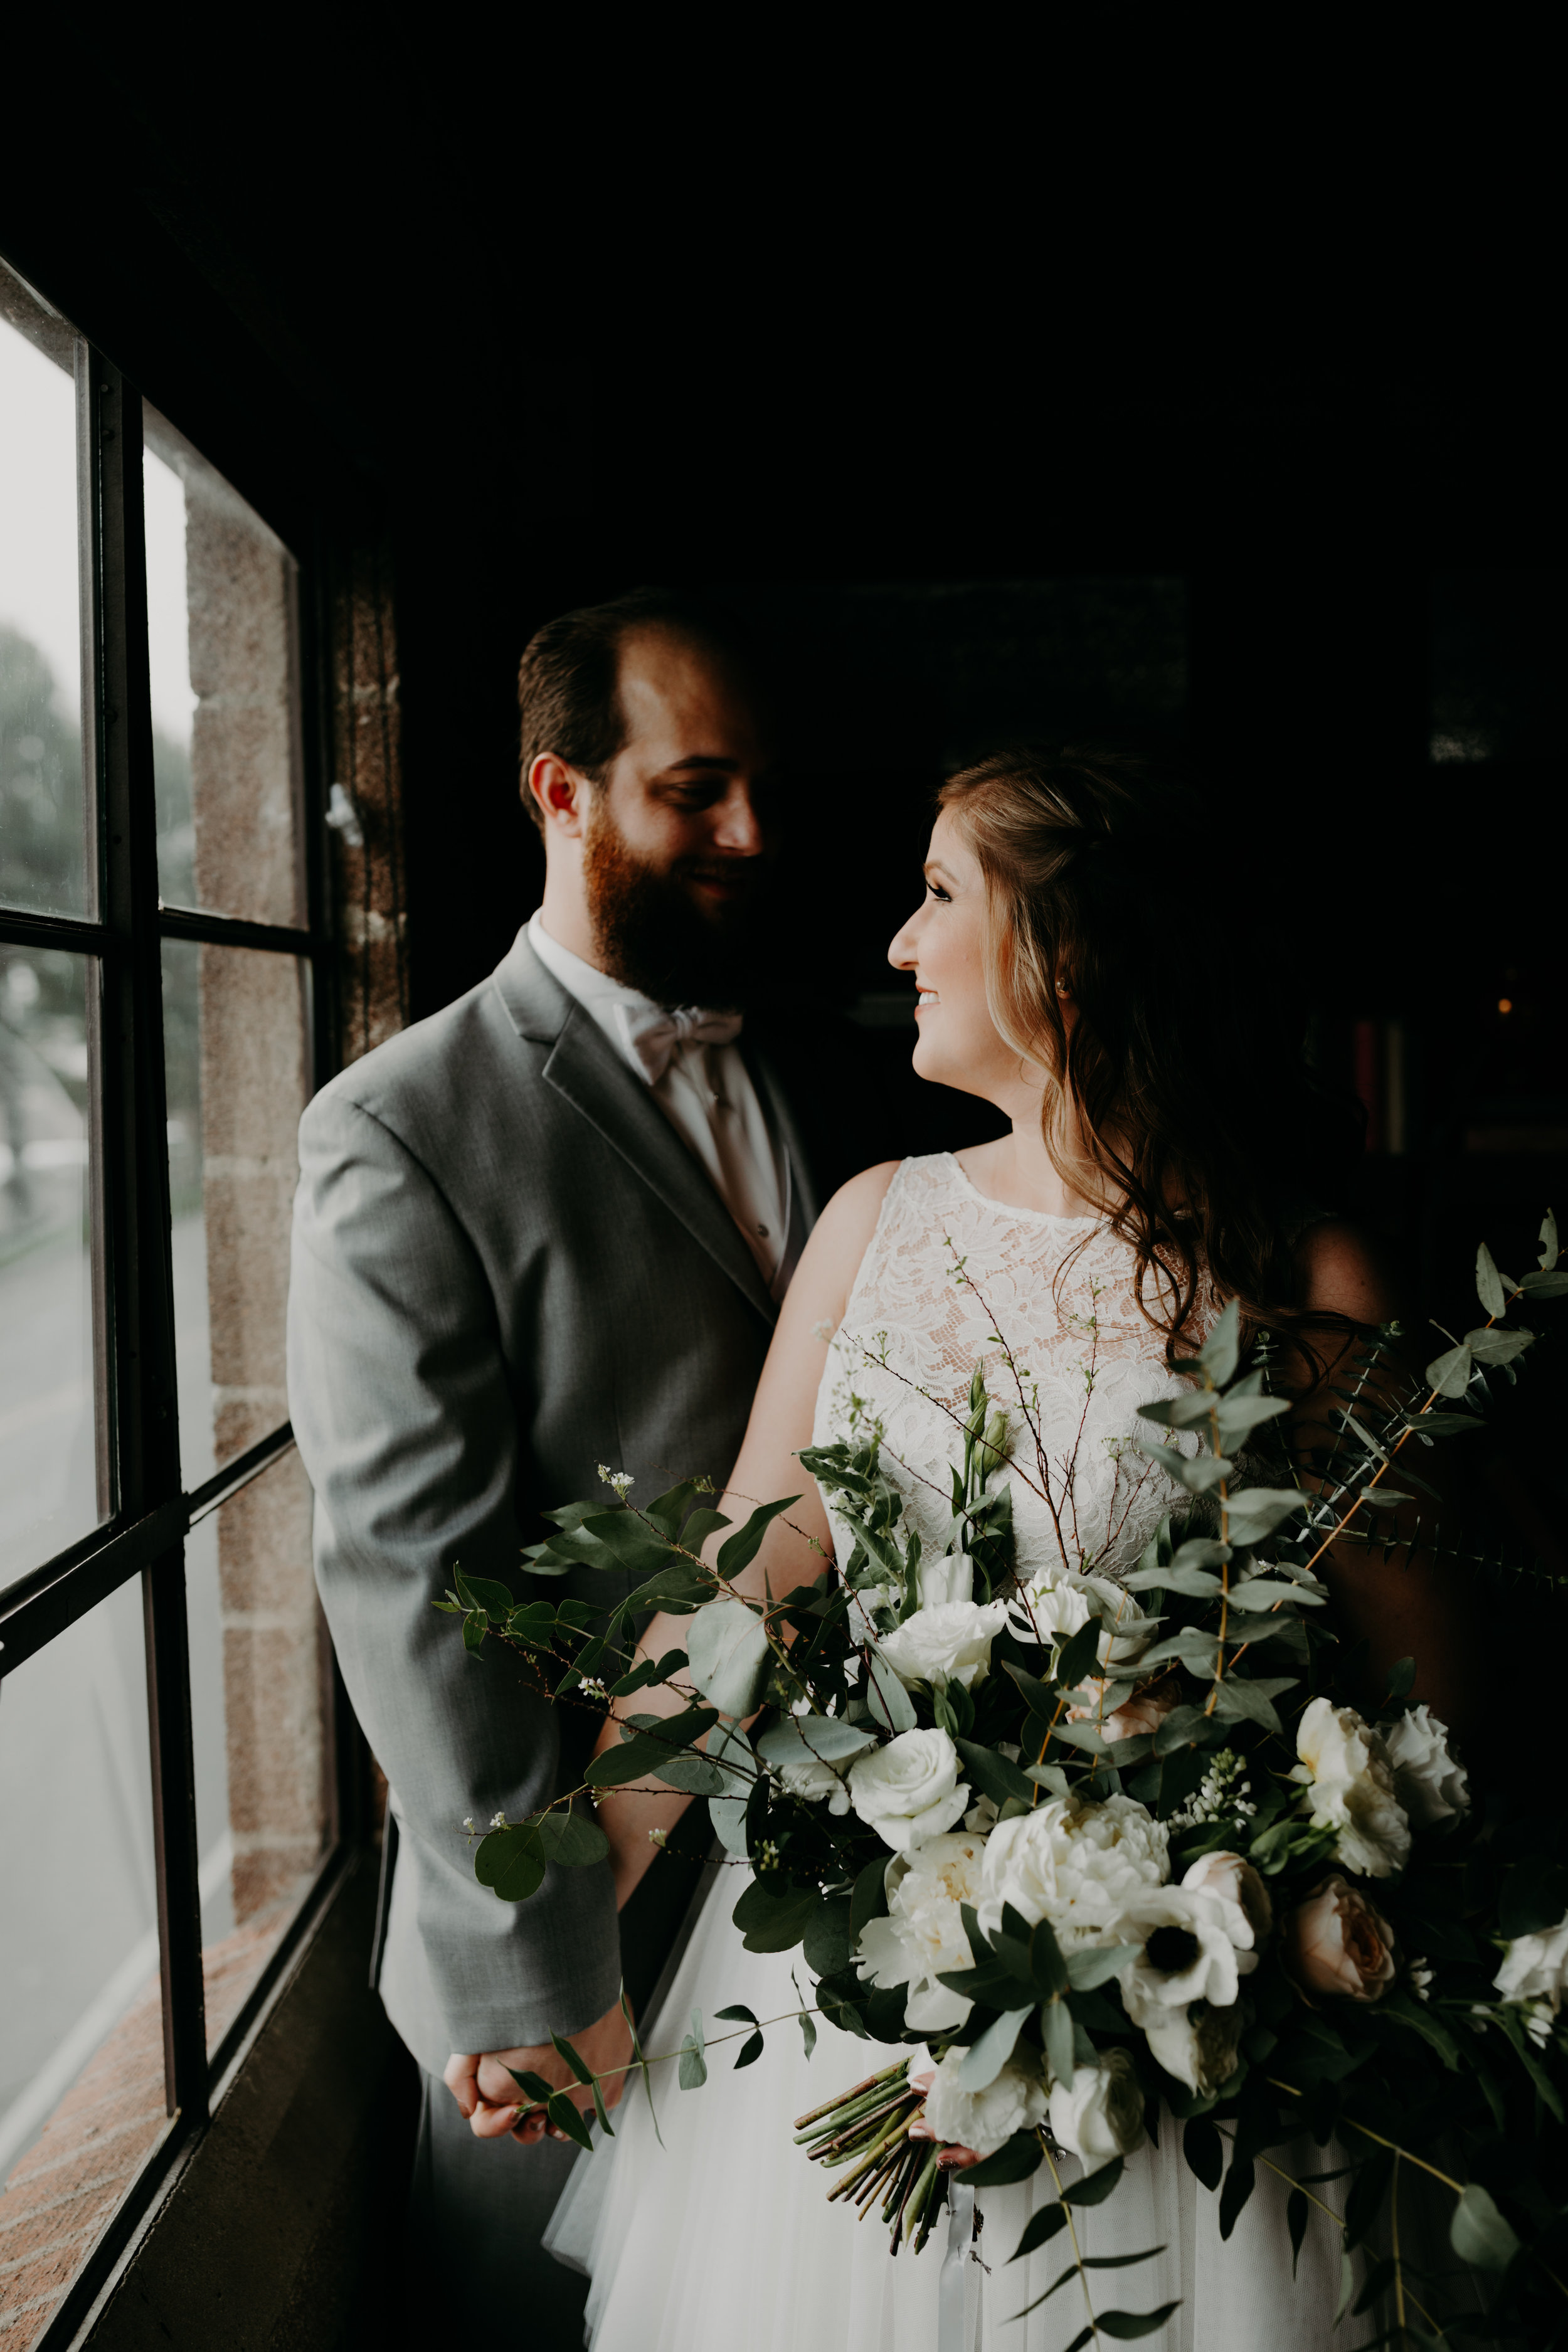 Smoky Hollow Studios Wedding Anne & Lewis Emily Magers Photography-377.jpg